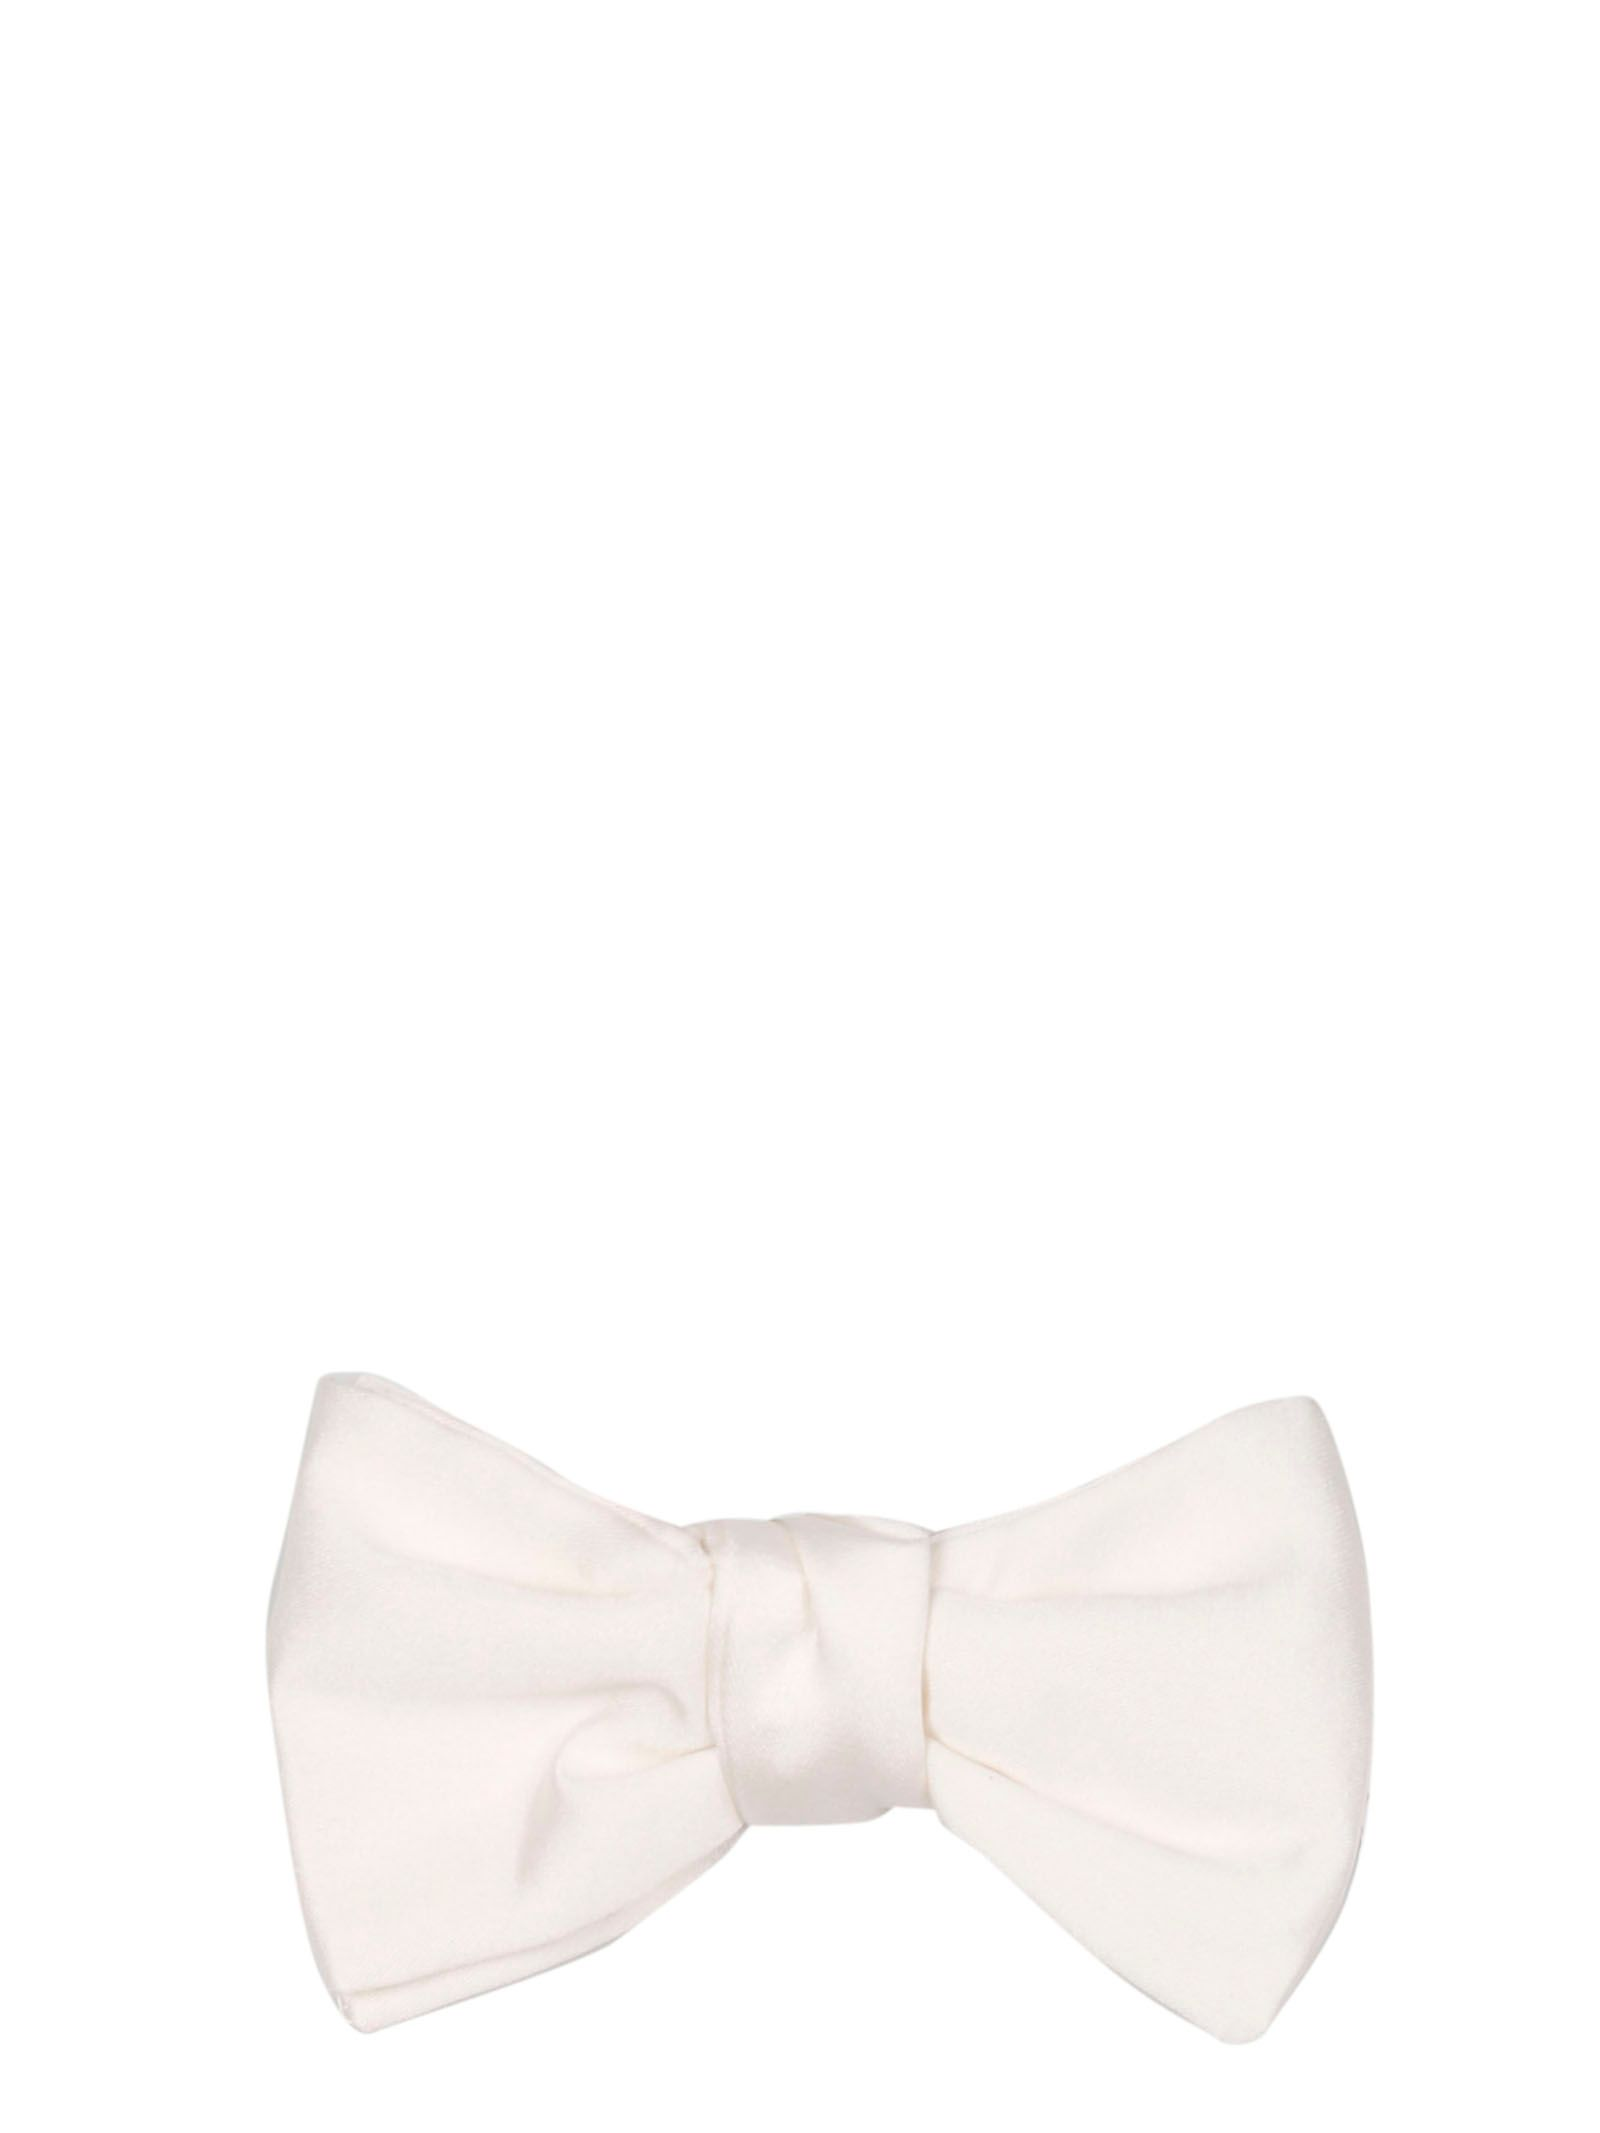 Givenchy White Silk Bow Tie